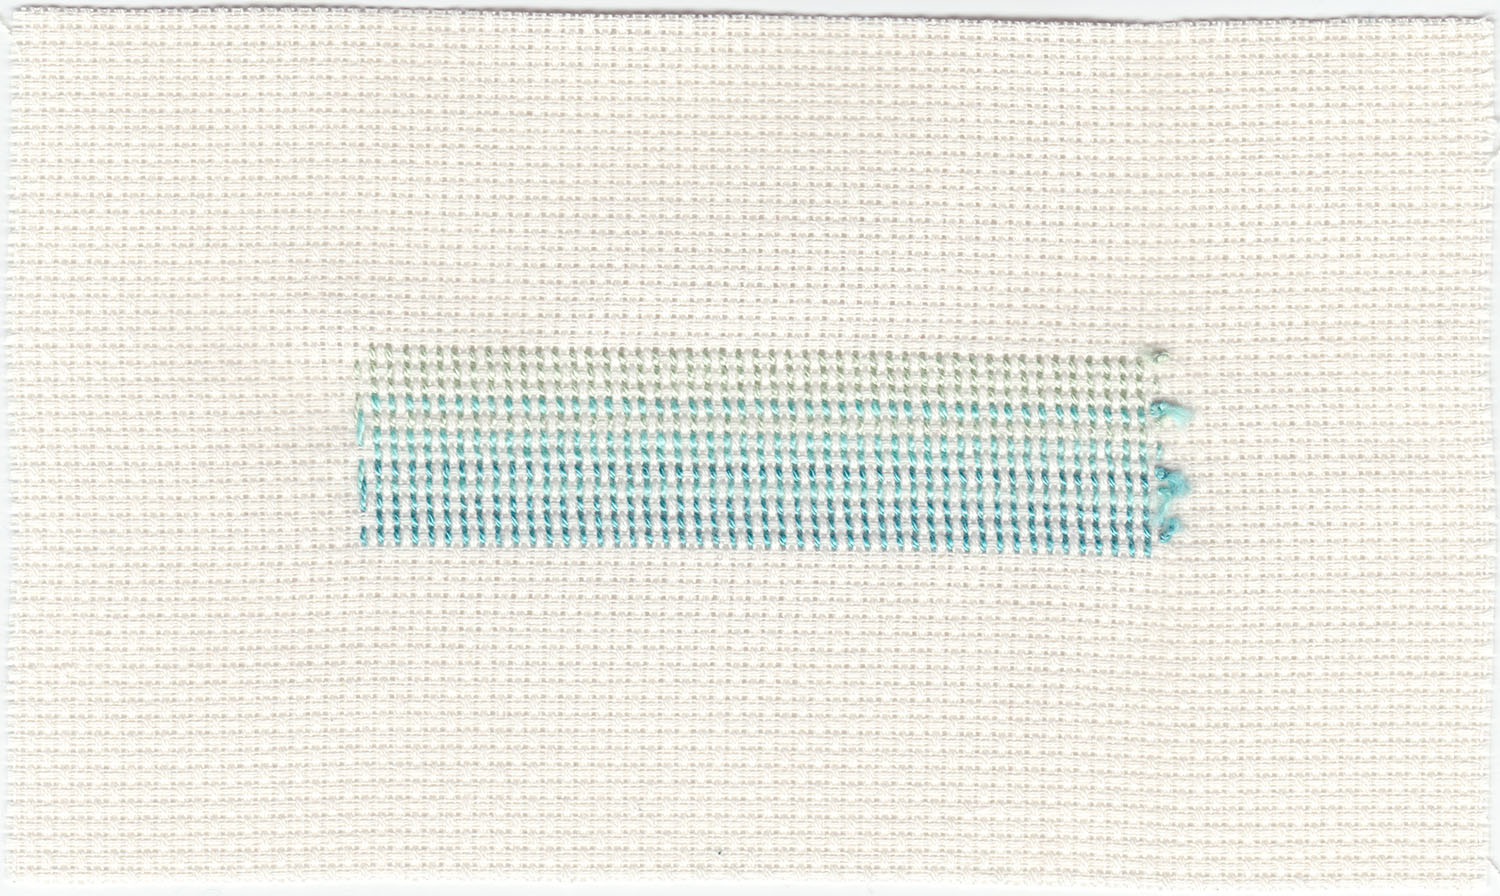 Colour Study in 576 Diagonal Stitches_4B_web.jpg